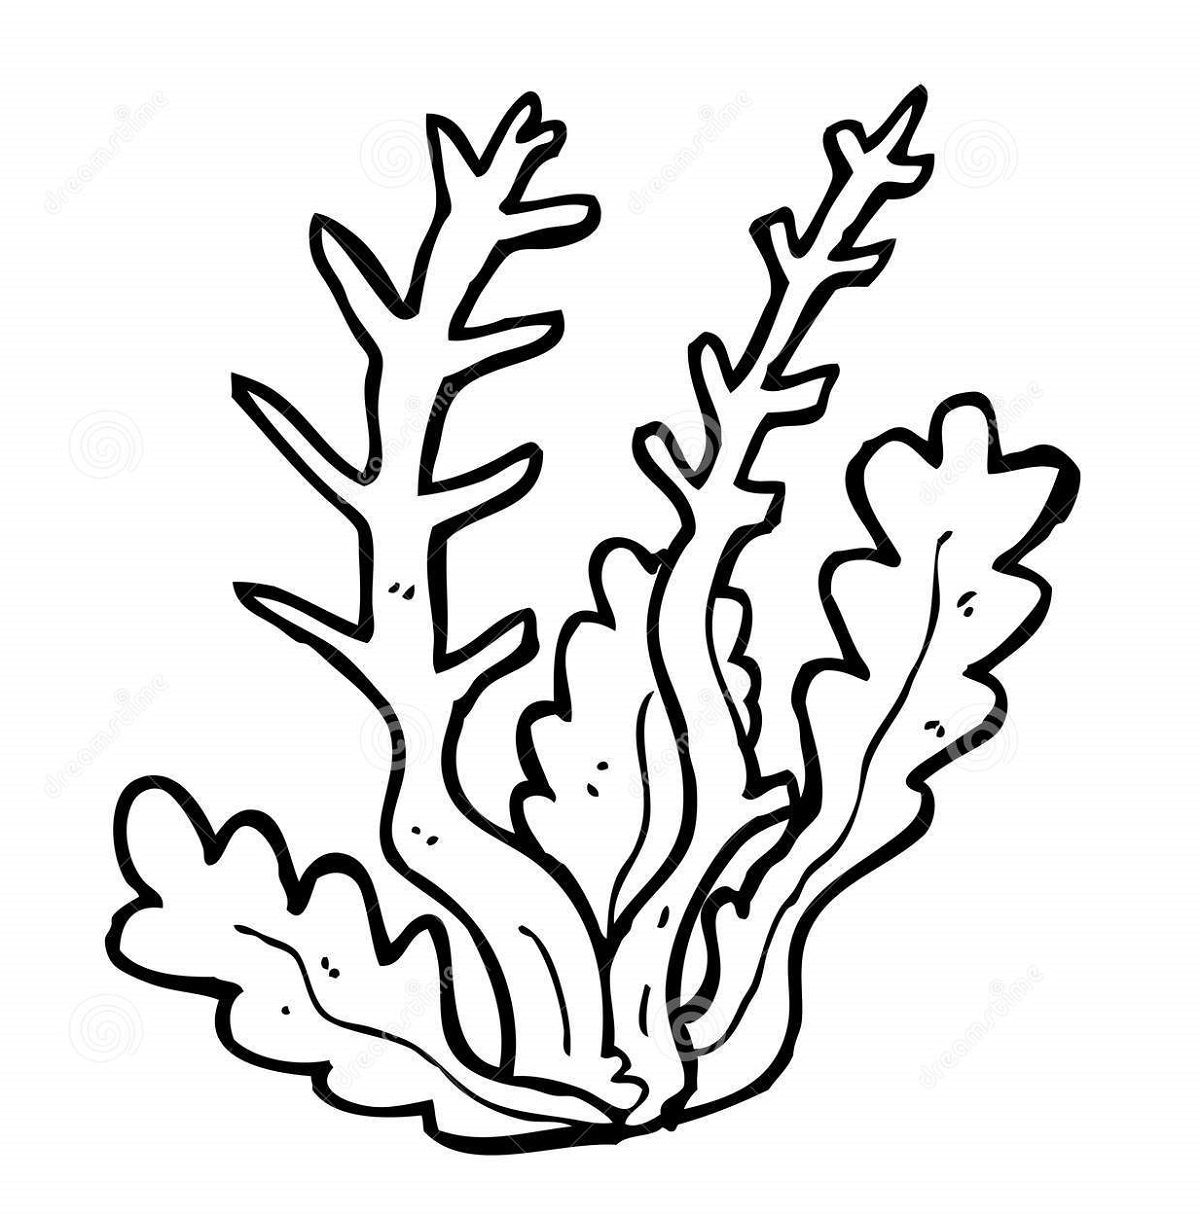 Seaweed Coral Coloring Pages For Kids